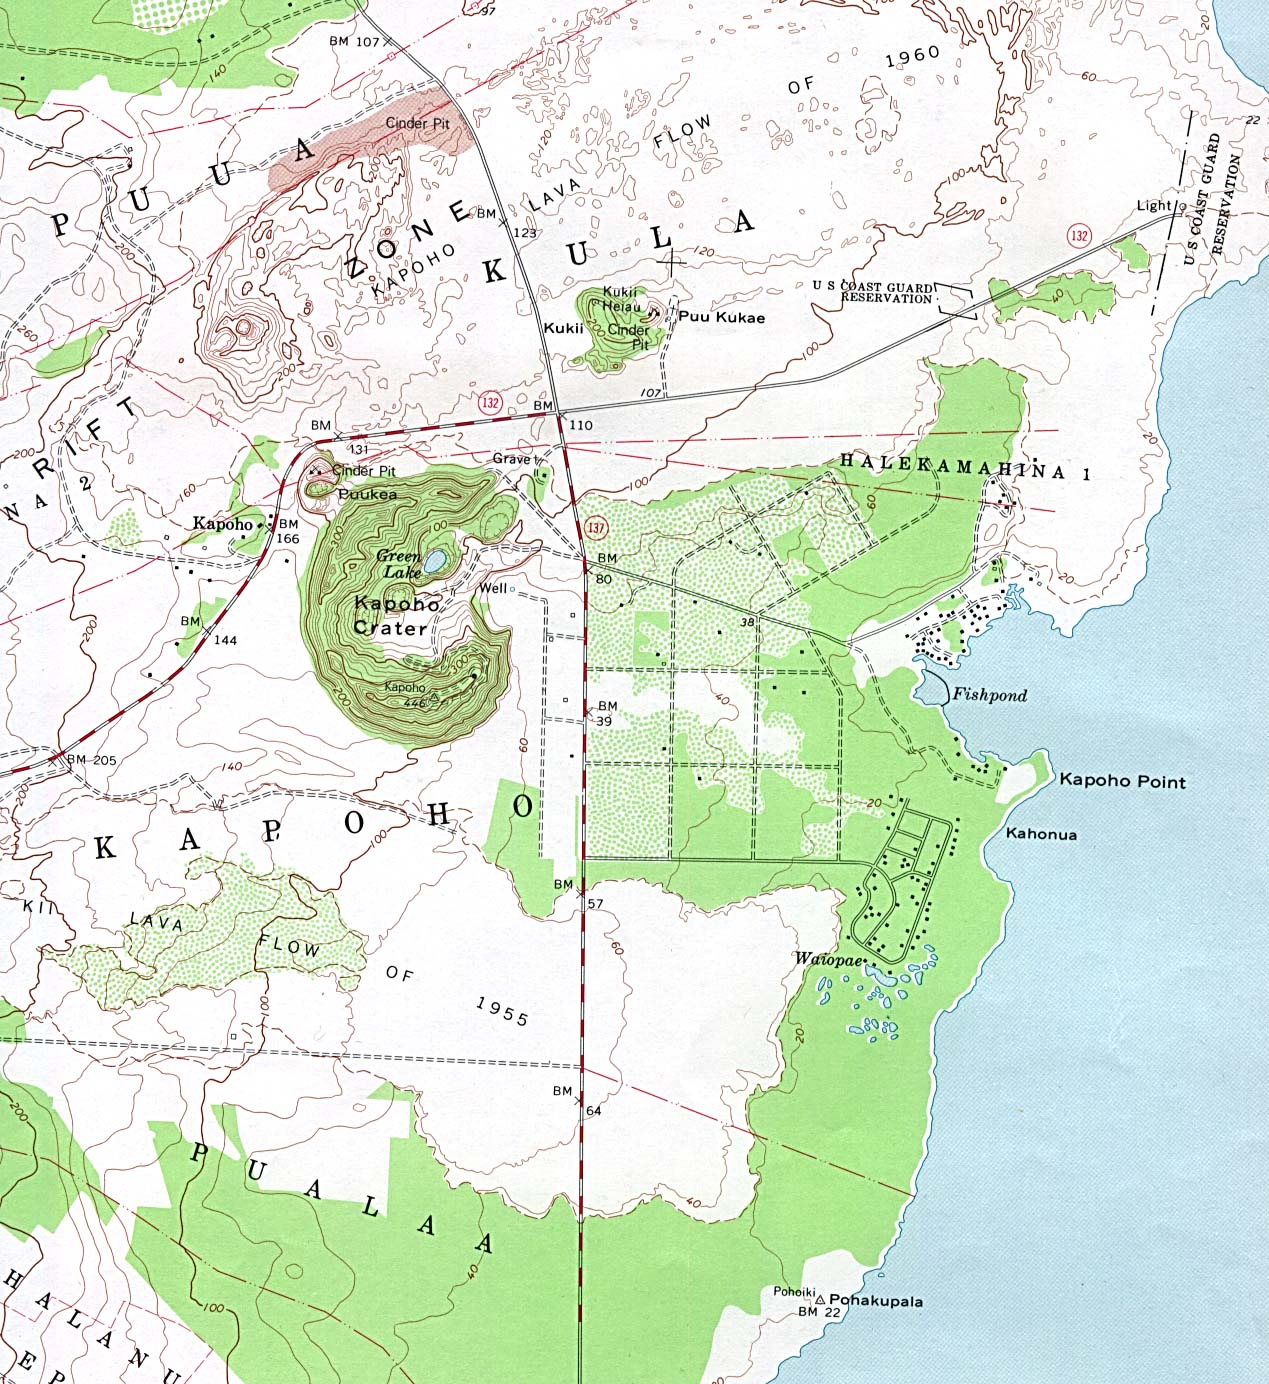 Kapoho Crater Topographic Map, Hawaii, United States